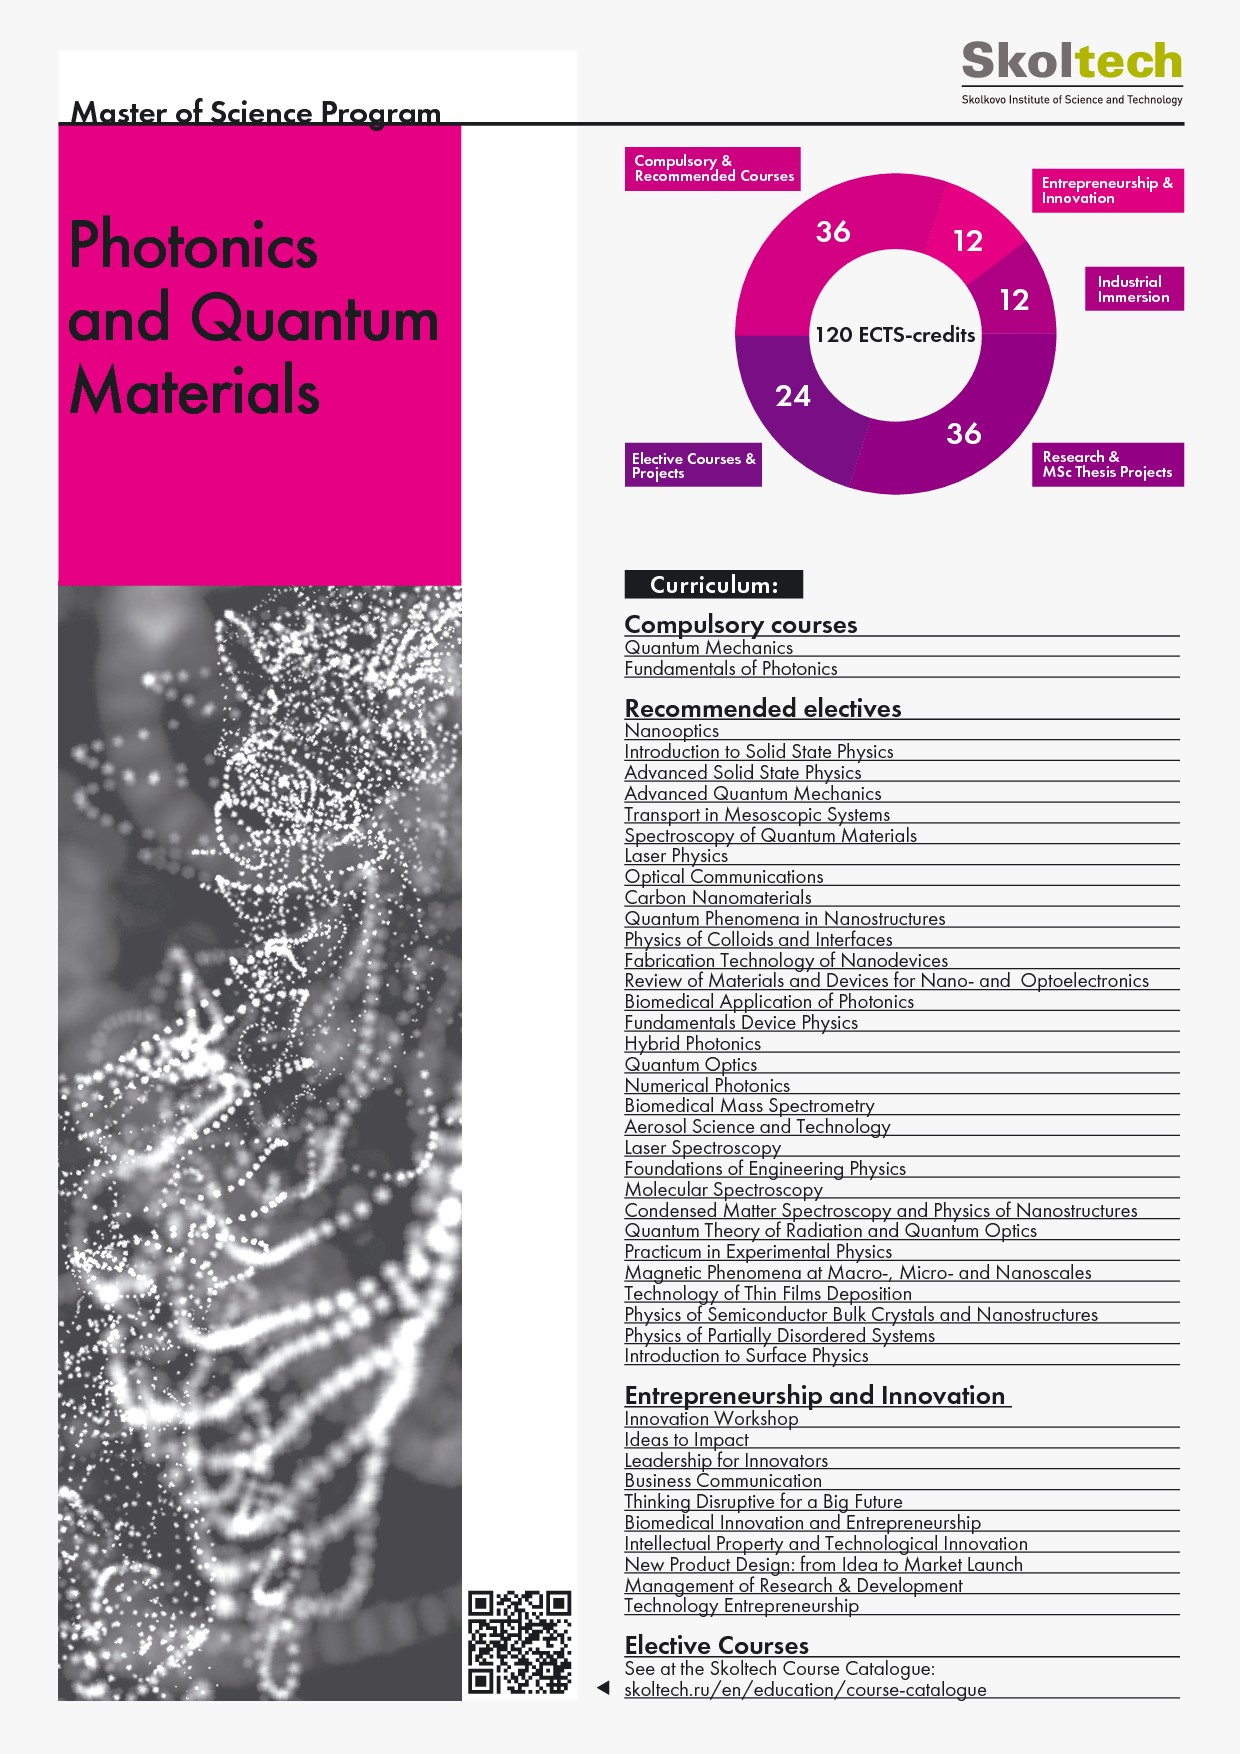 photonics-and-quantum-materials-sep2018-v4